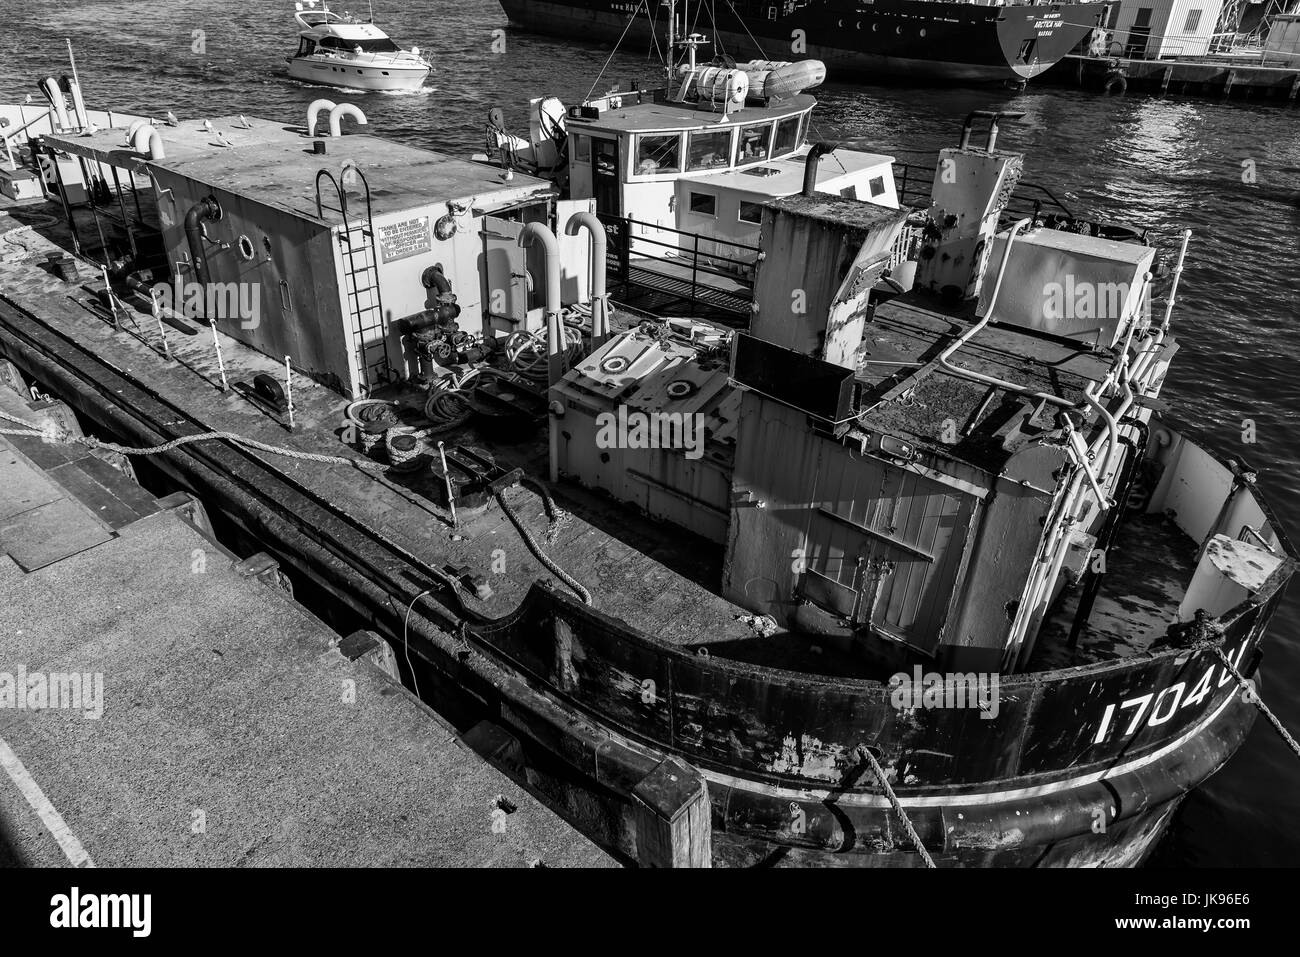 Rusty old fuel barge moored alongside with modern tug - Stock Image